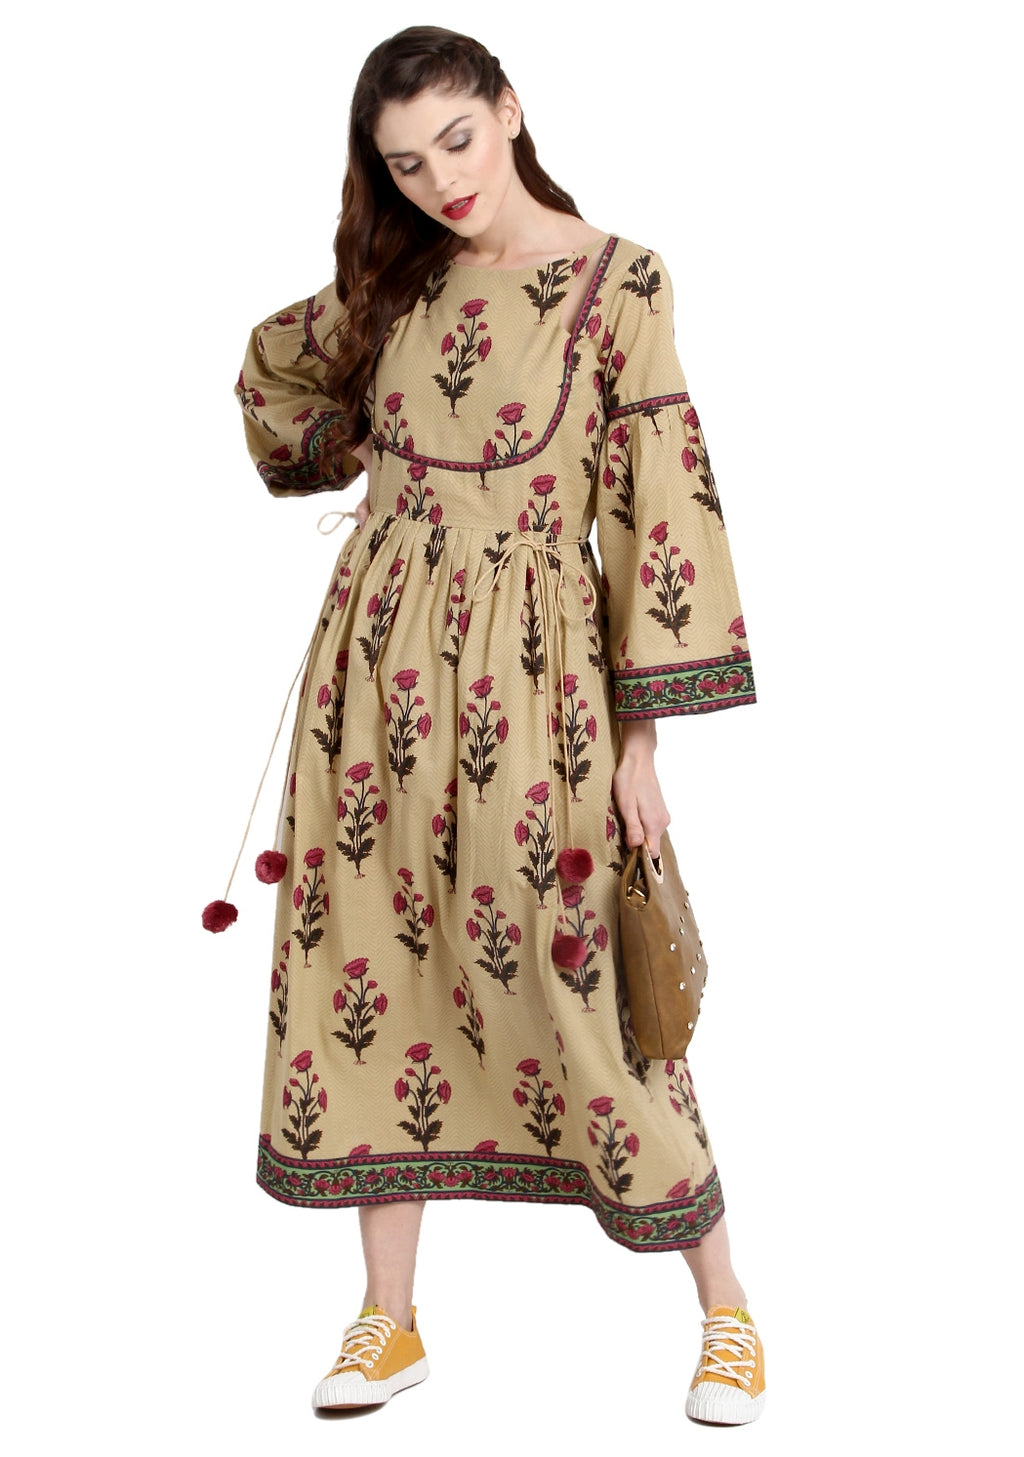 Beige Color Cotton Readymade Party Wear Kurtis ( Sizes-36,38,40,42,44) Janasya Catlog SJ-10254